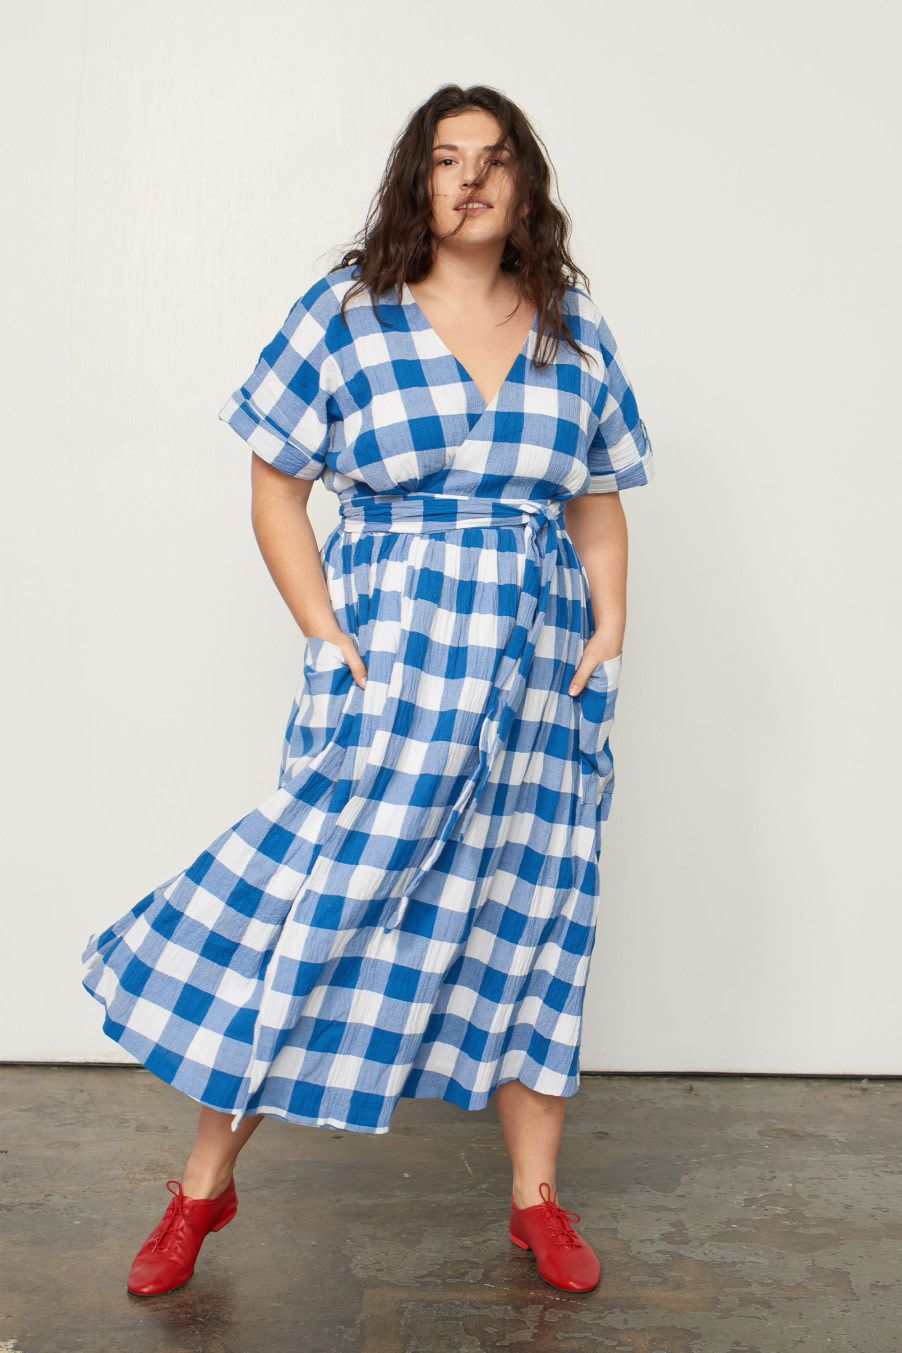 542584f2b6d Plus Size Dresses · I need more than a few pieces from this new extended sizes  launch from Mara Hoffman